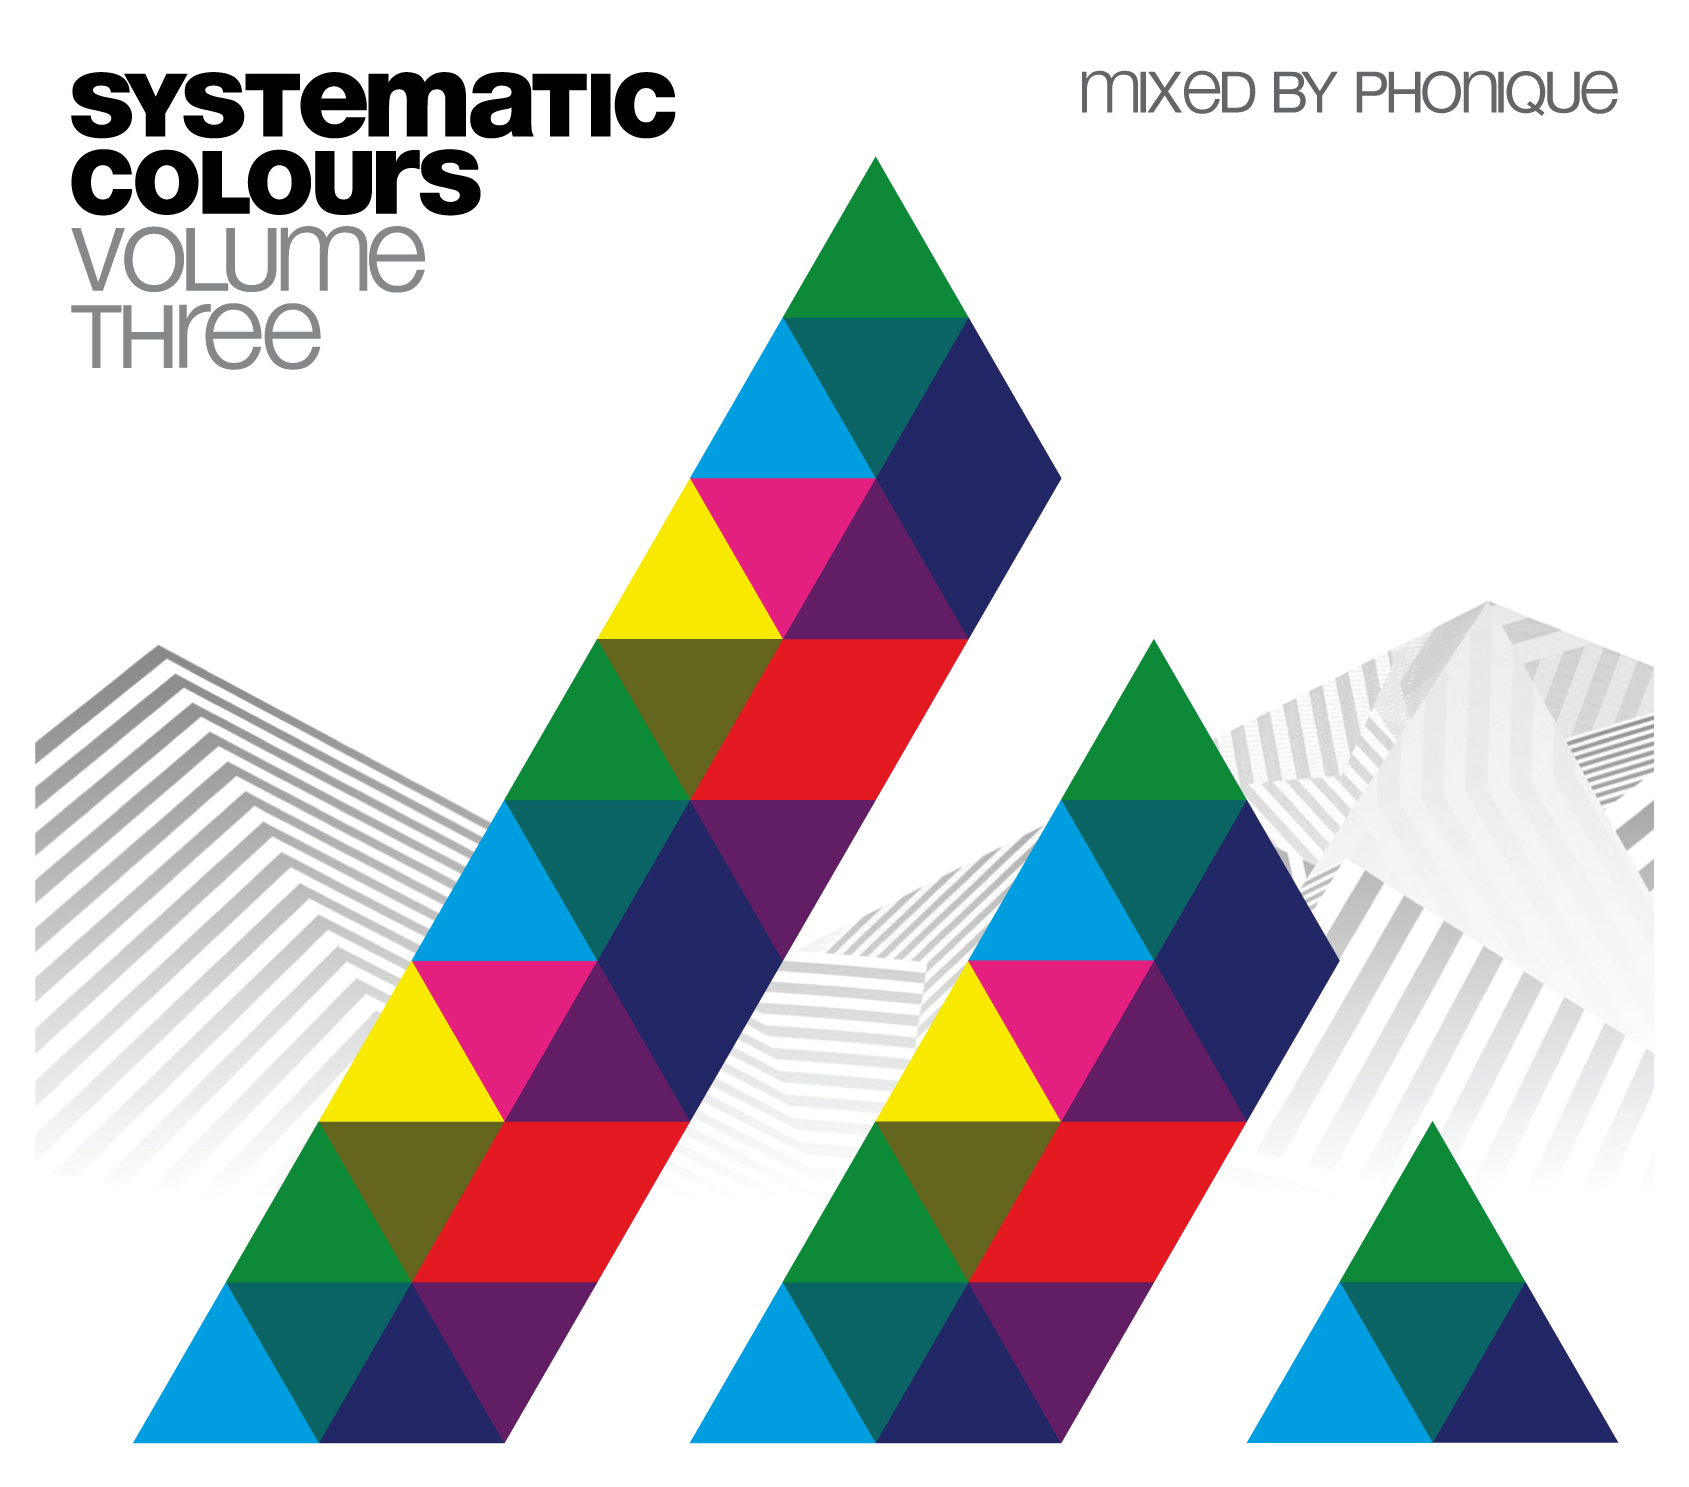 Systematic Colours - Volume Three (Mixed by Phonique)